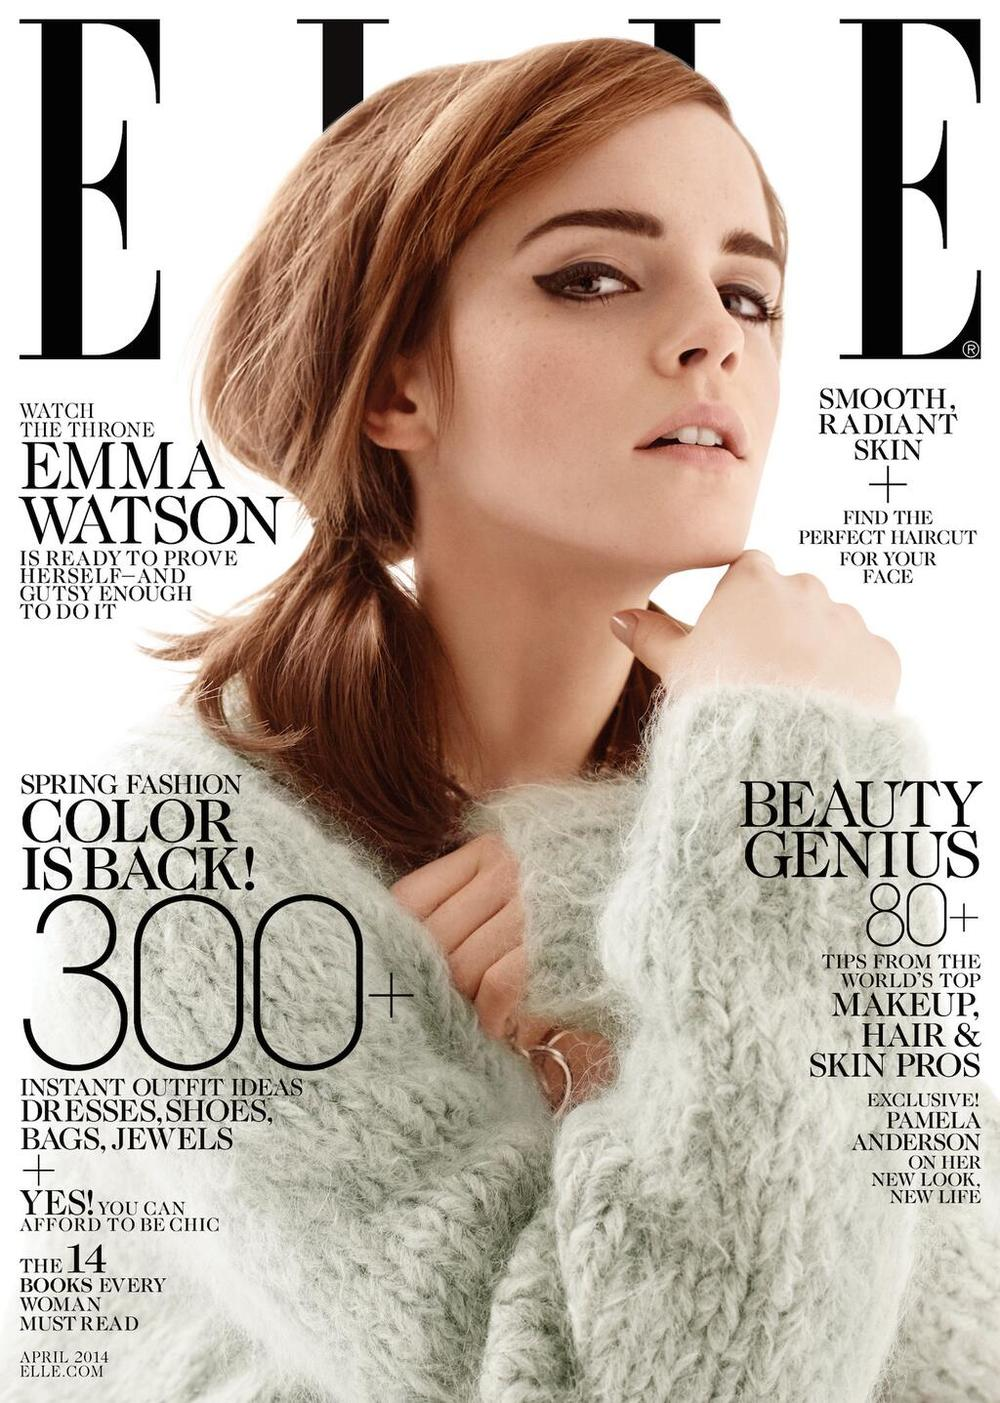 Elle is the world's largest fashion magazine, with 43 international editions in over 60 countries.